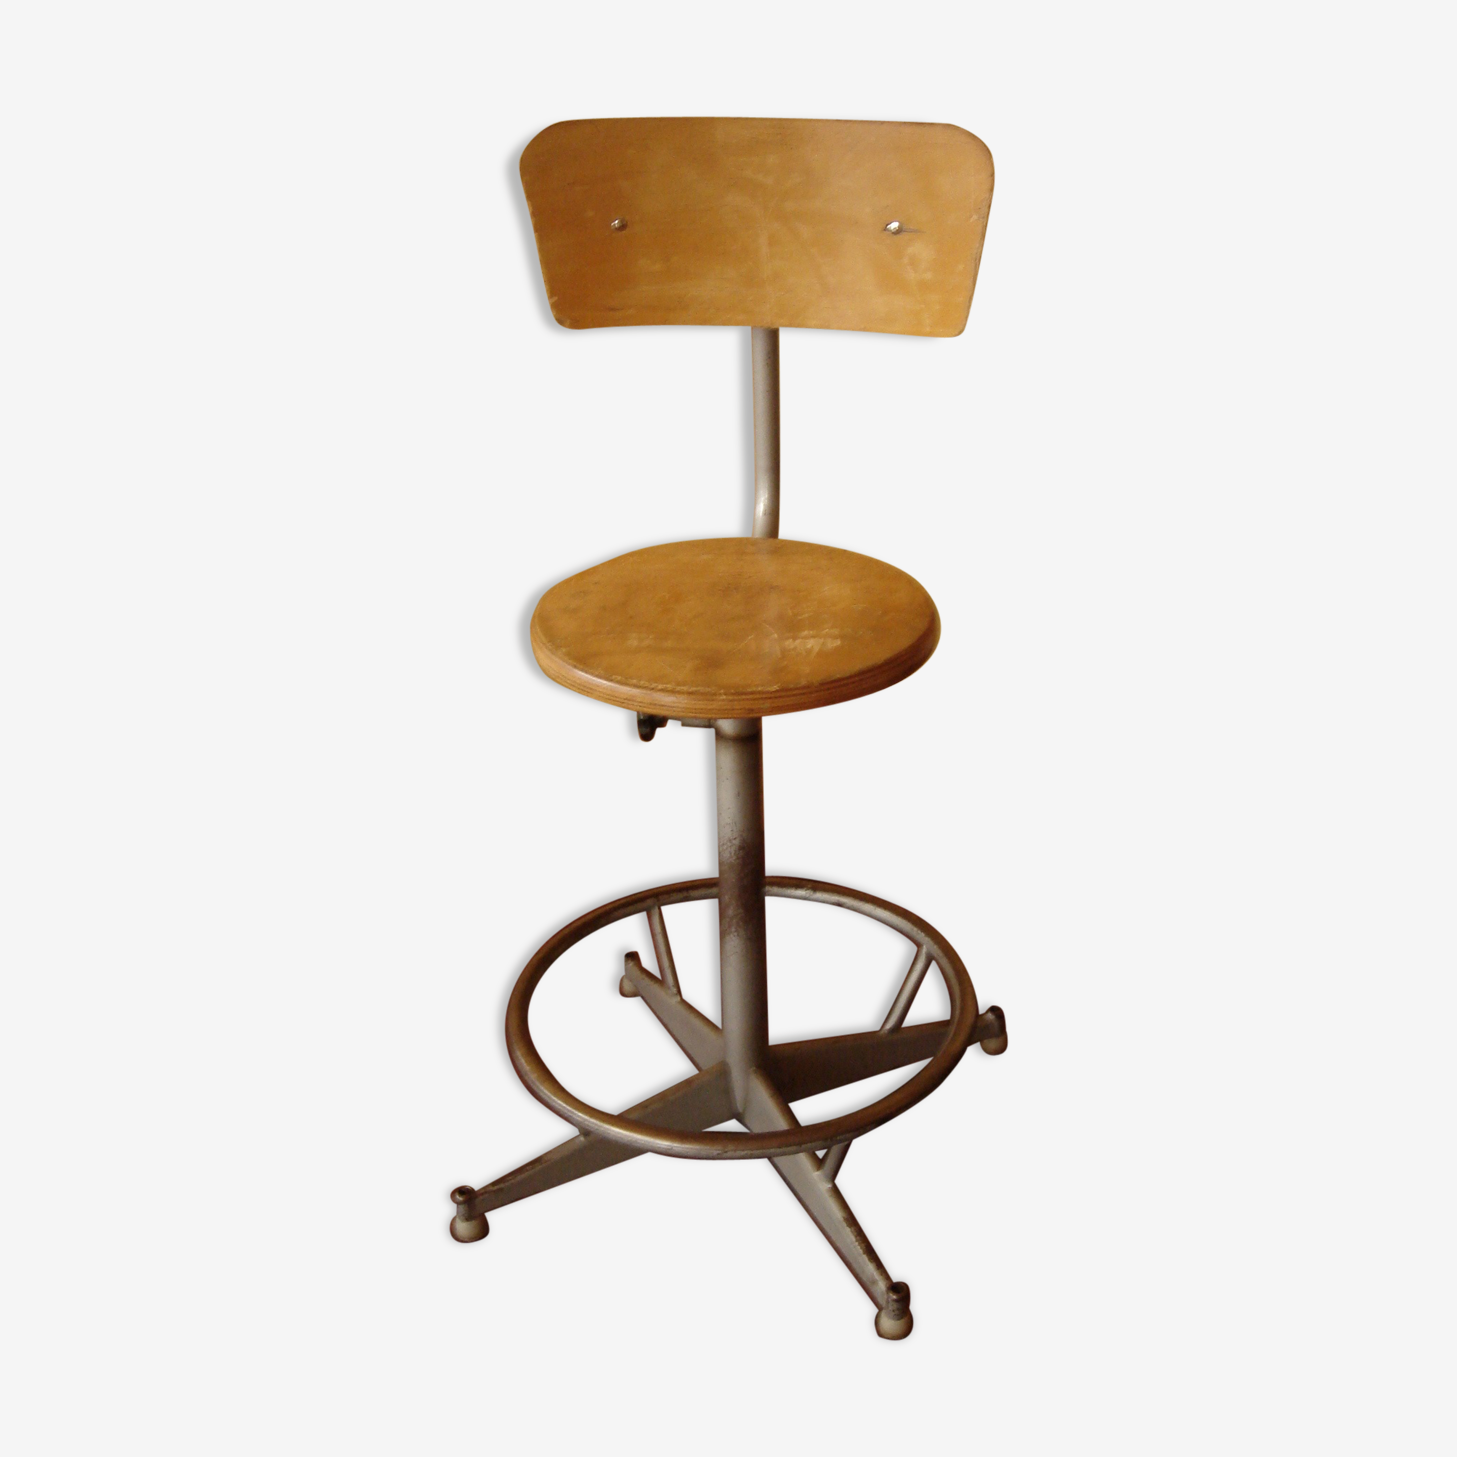 High chair of workshop of 1970